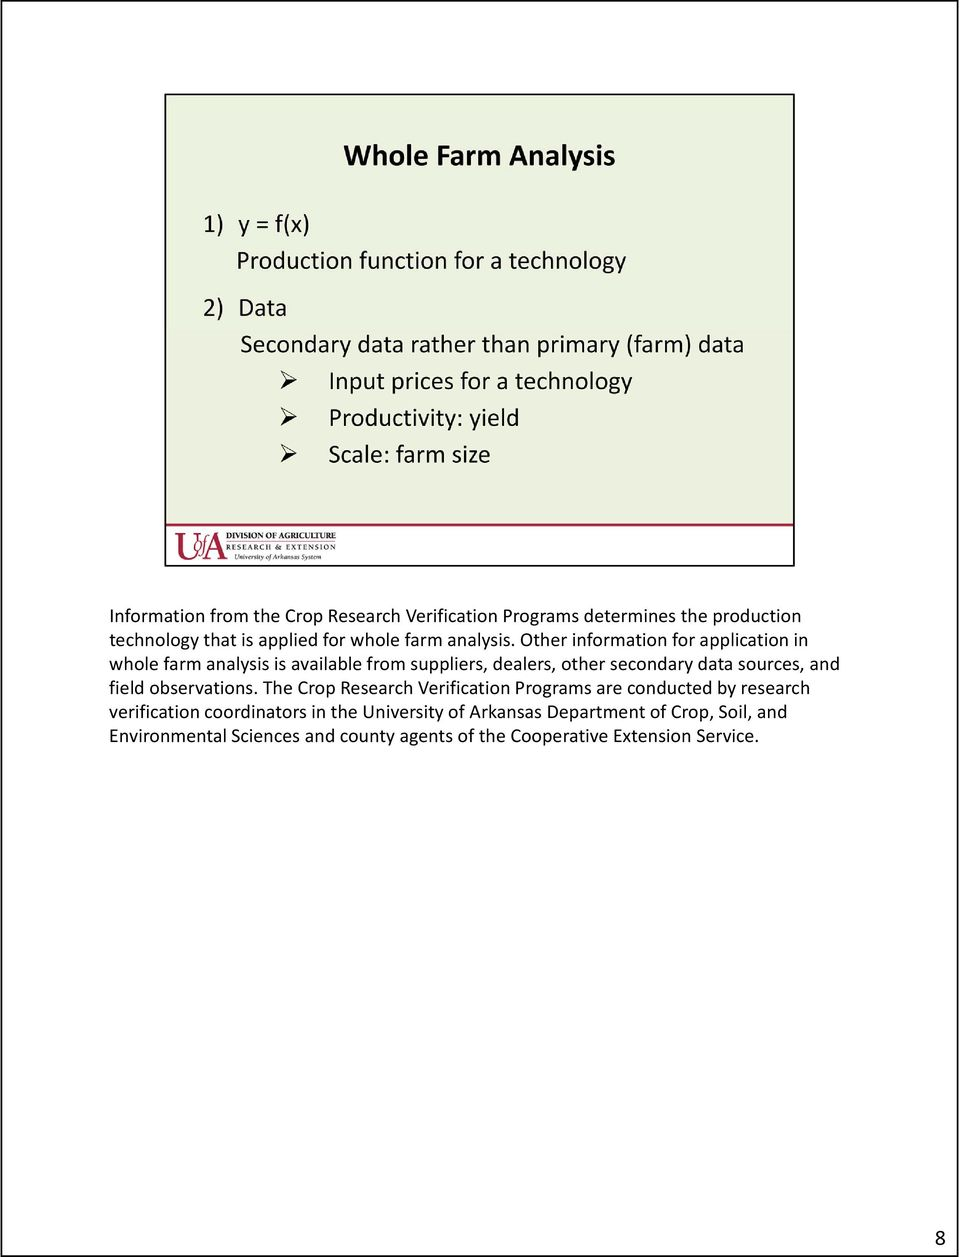 Other information for application in whole farm analysis is available from suppliers, dealers, other secondary data sources, and